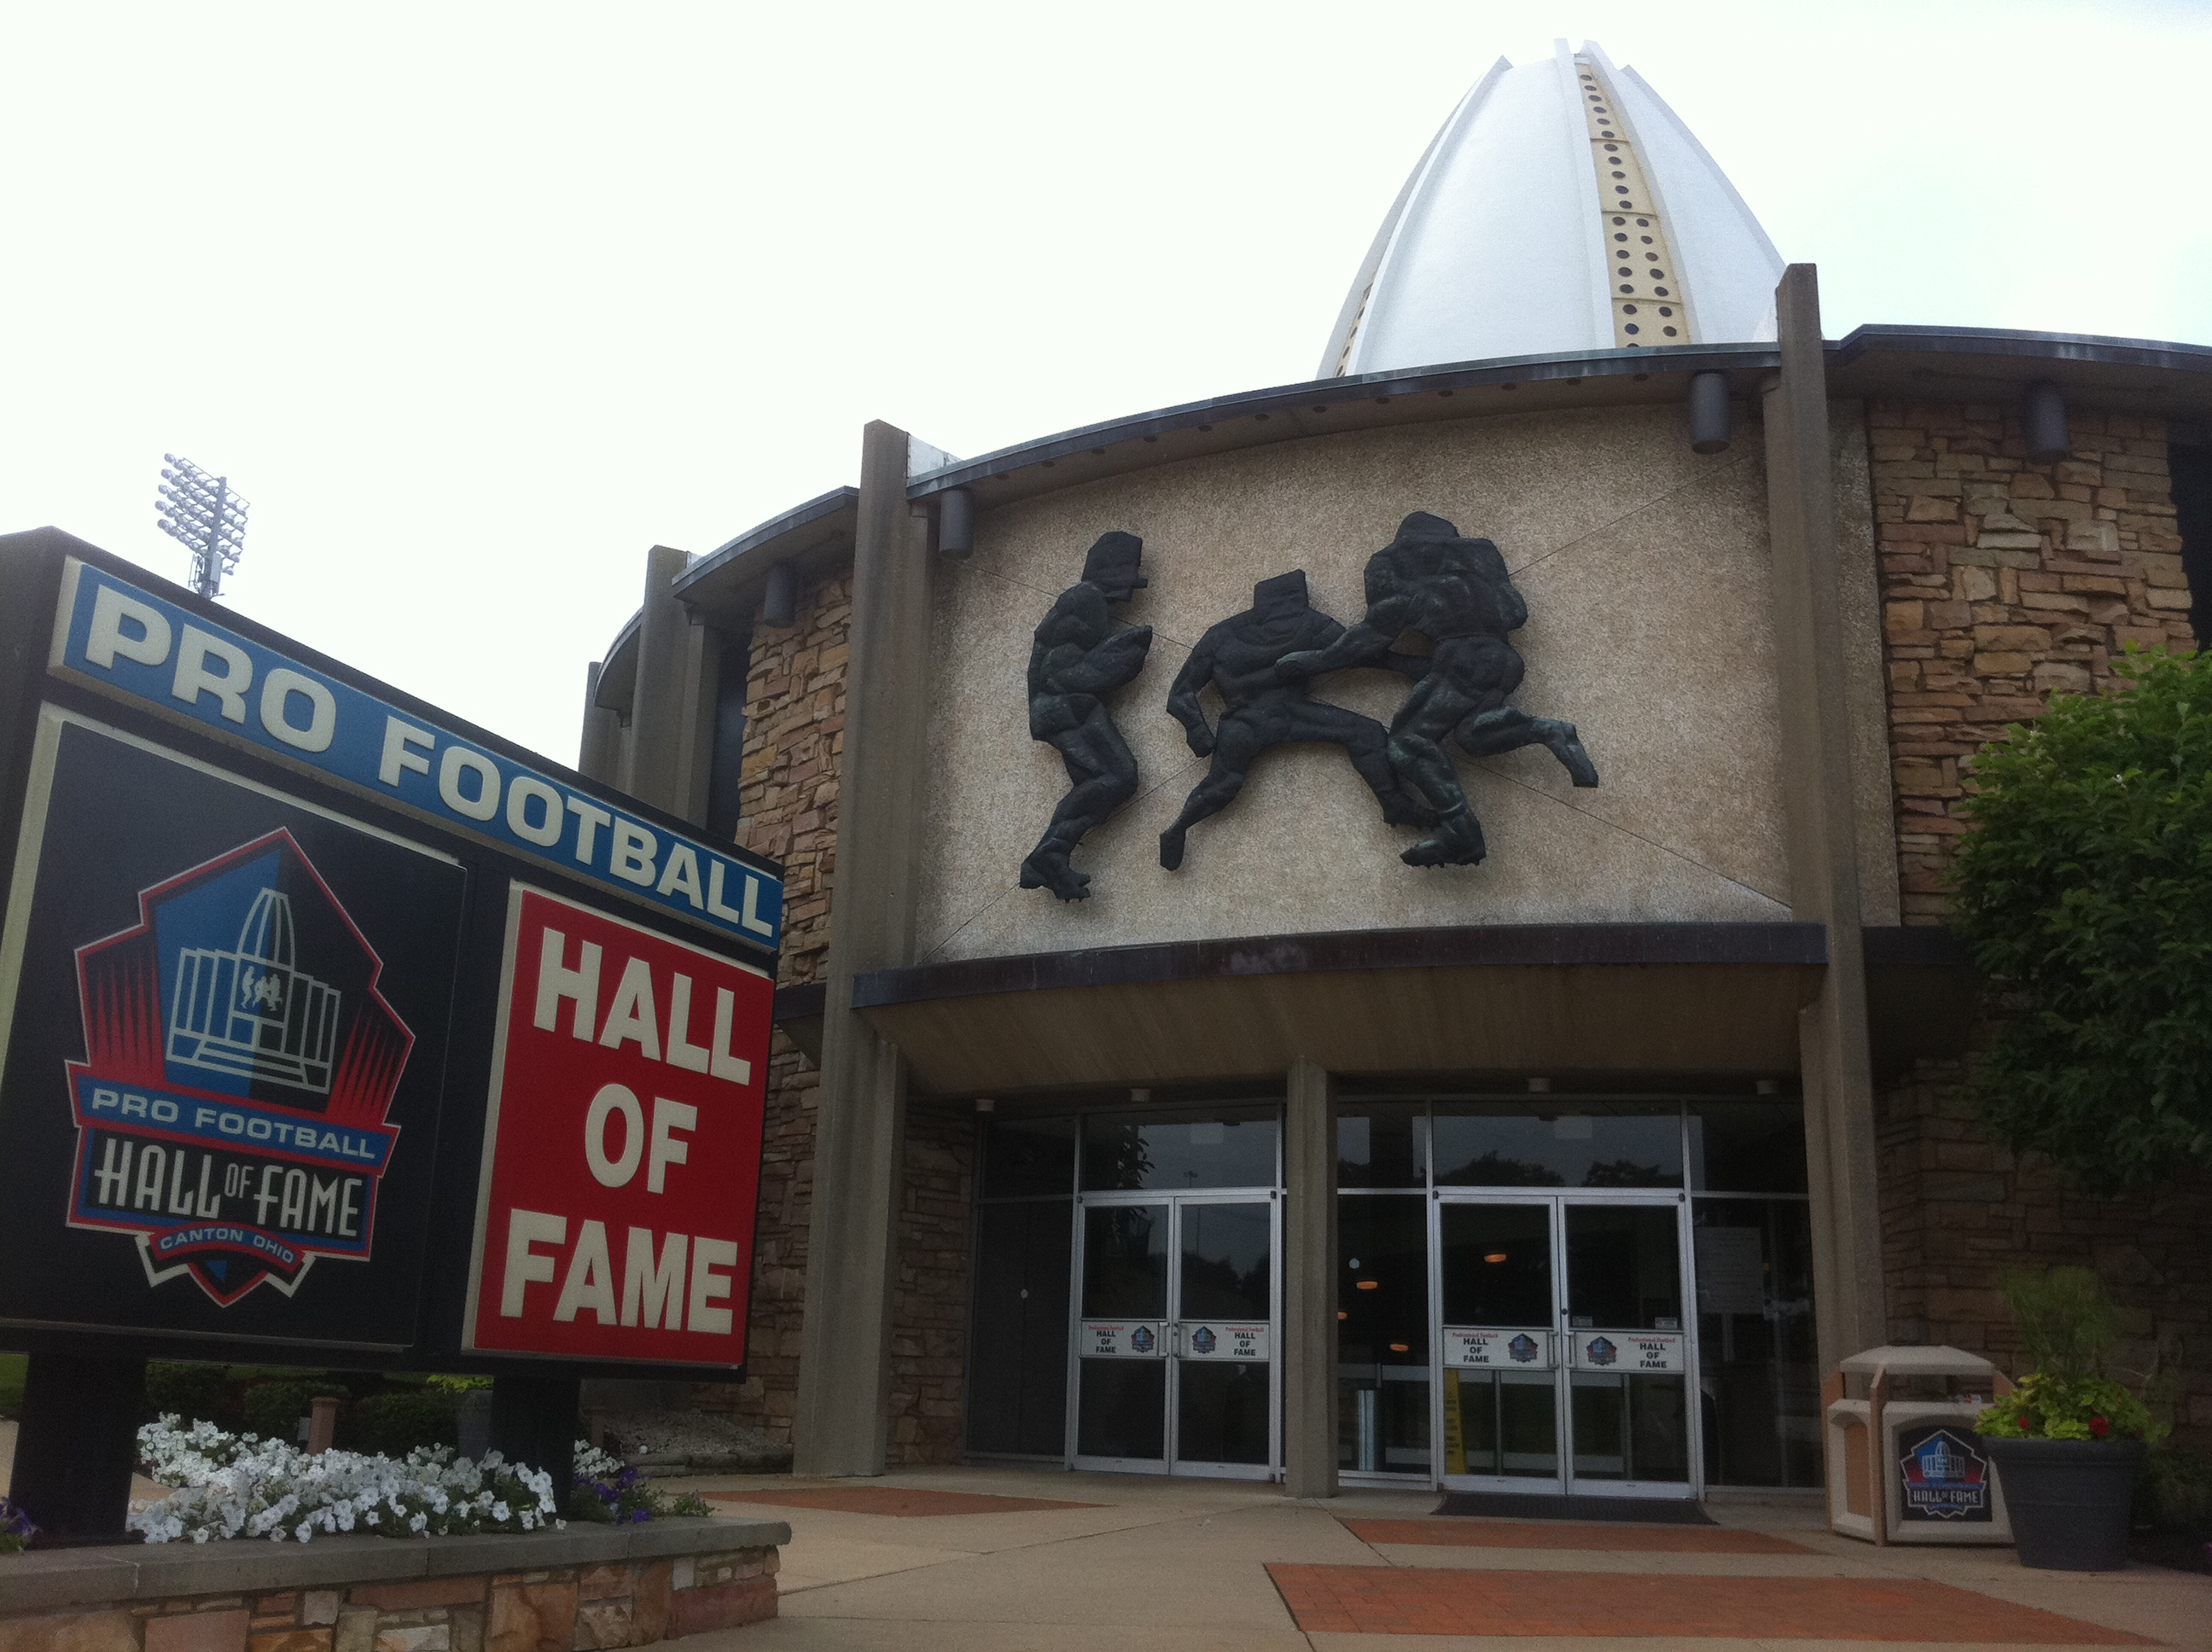 u2 360 tour across america days 55 57 milwaukee football hall of fame and home to rest on. Black Bedroom Furniture Sets. Home Design Ideas